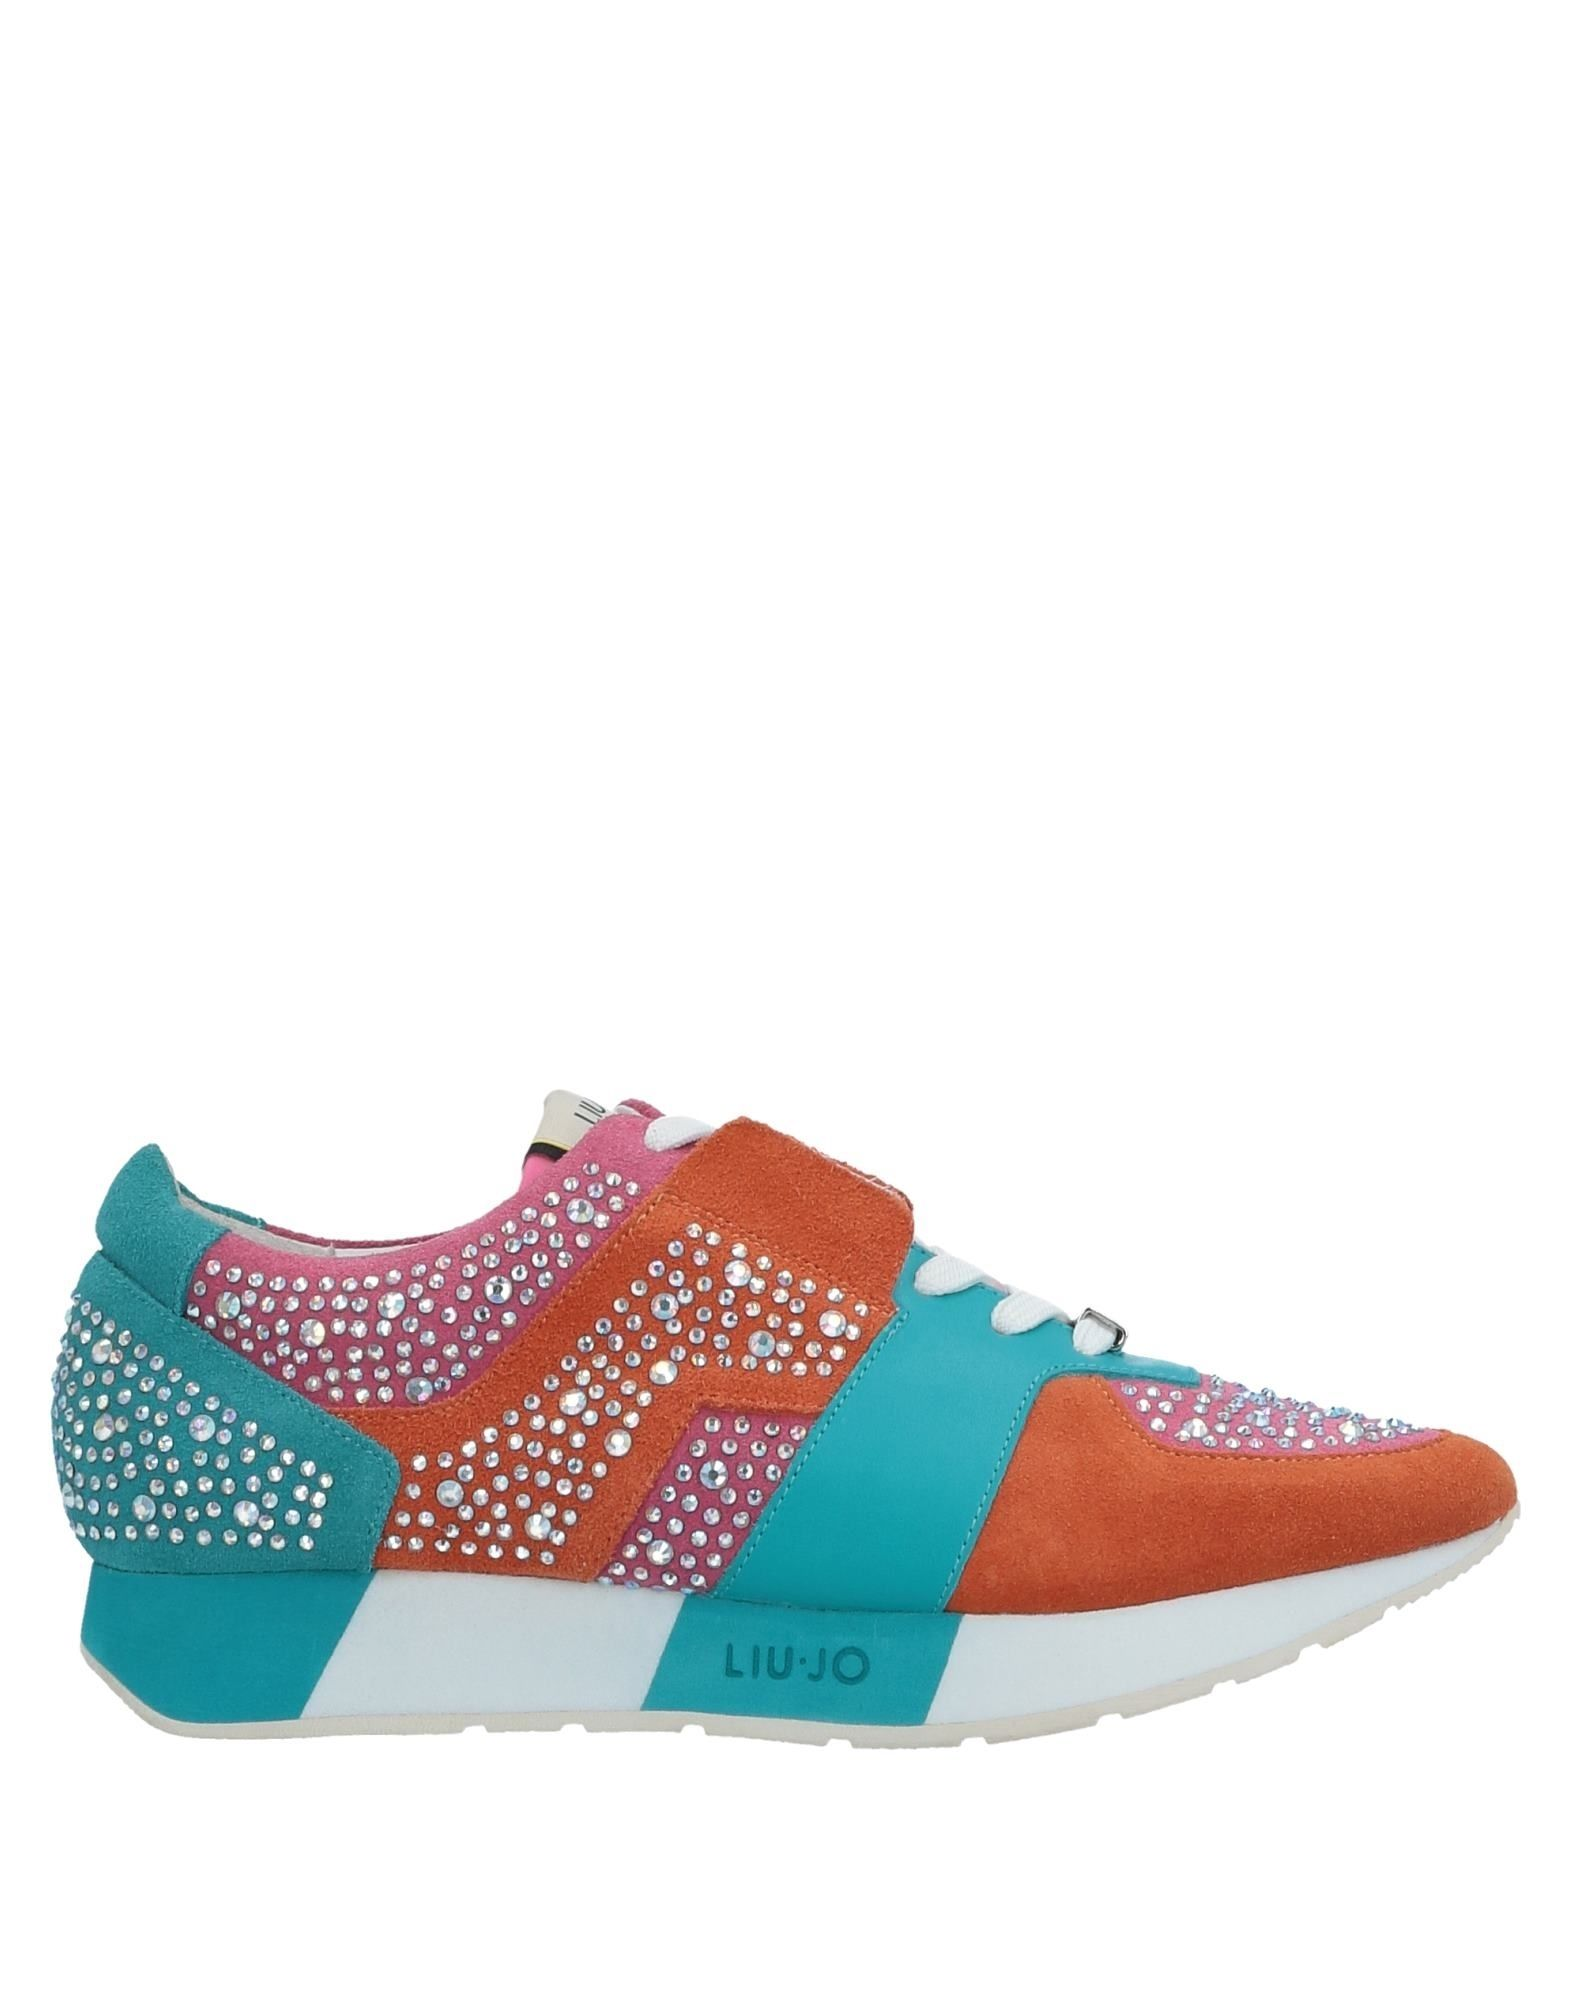 Baskets Liu •Jo Shoes Femme - Baskets Liu •Jo Shoes Orange Réduction de prix saisonnier, remise